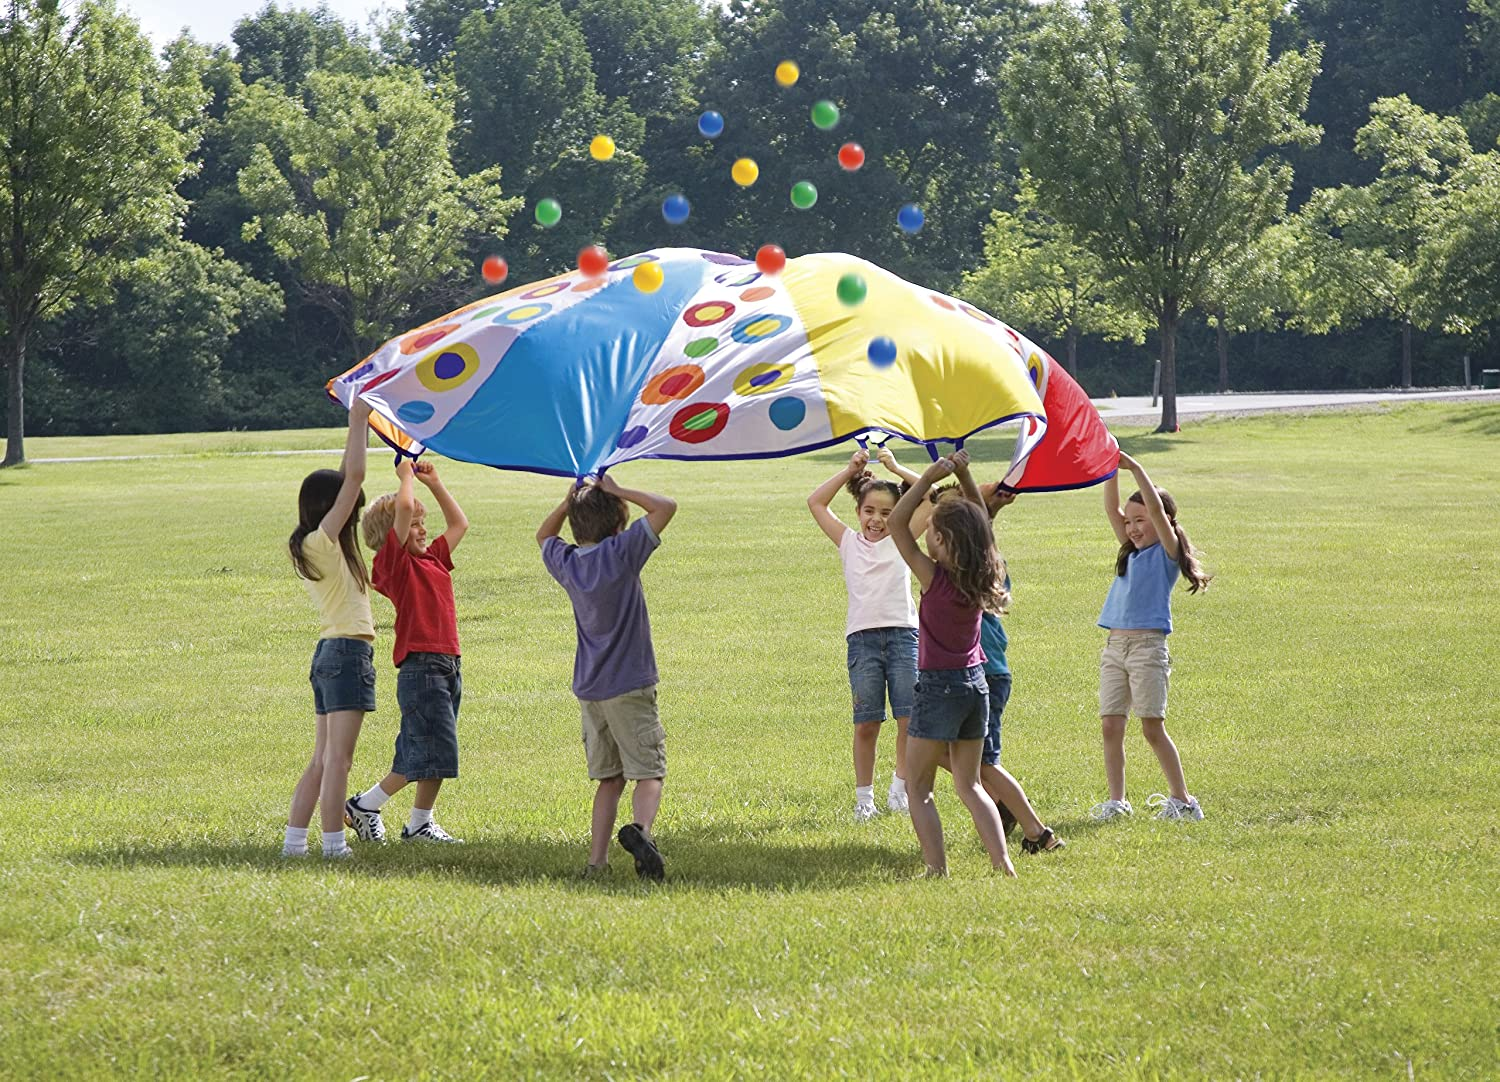 Alex Toys Super Parachute Game